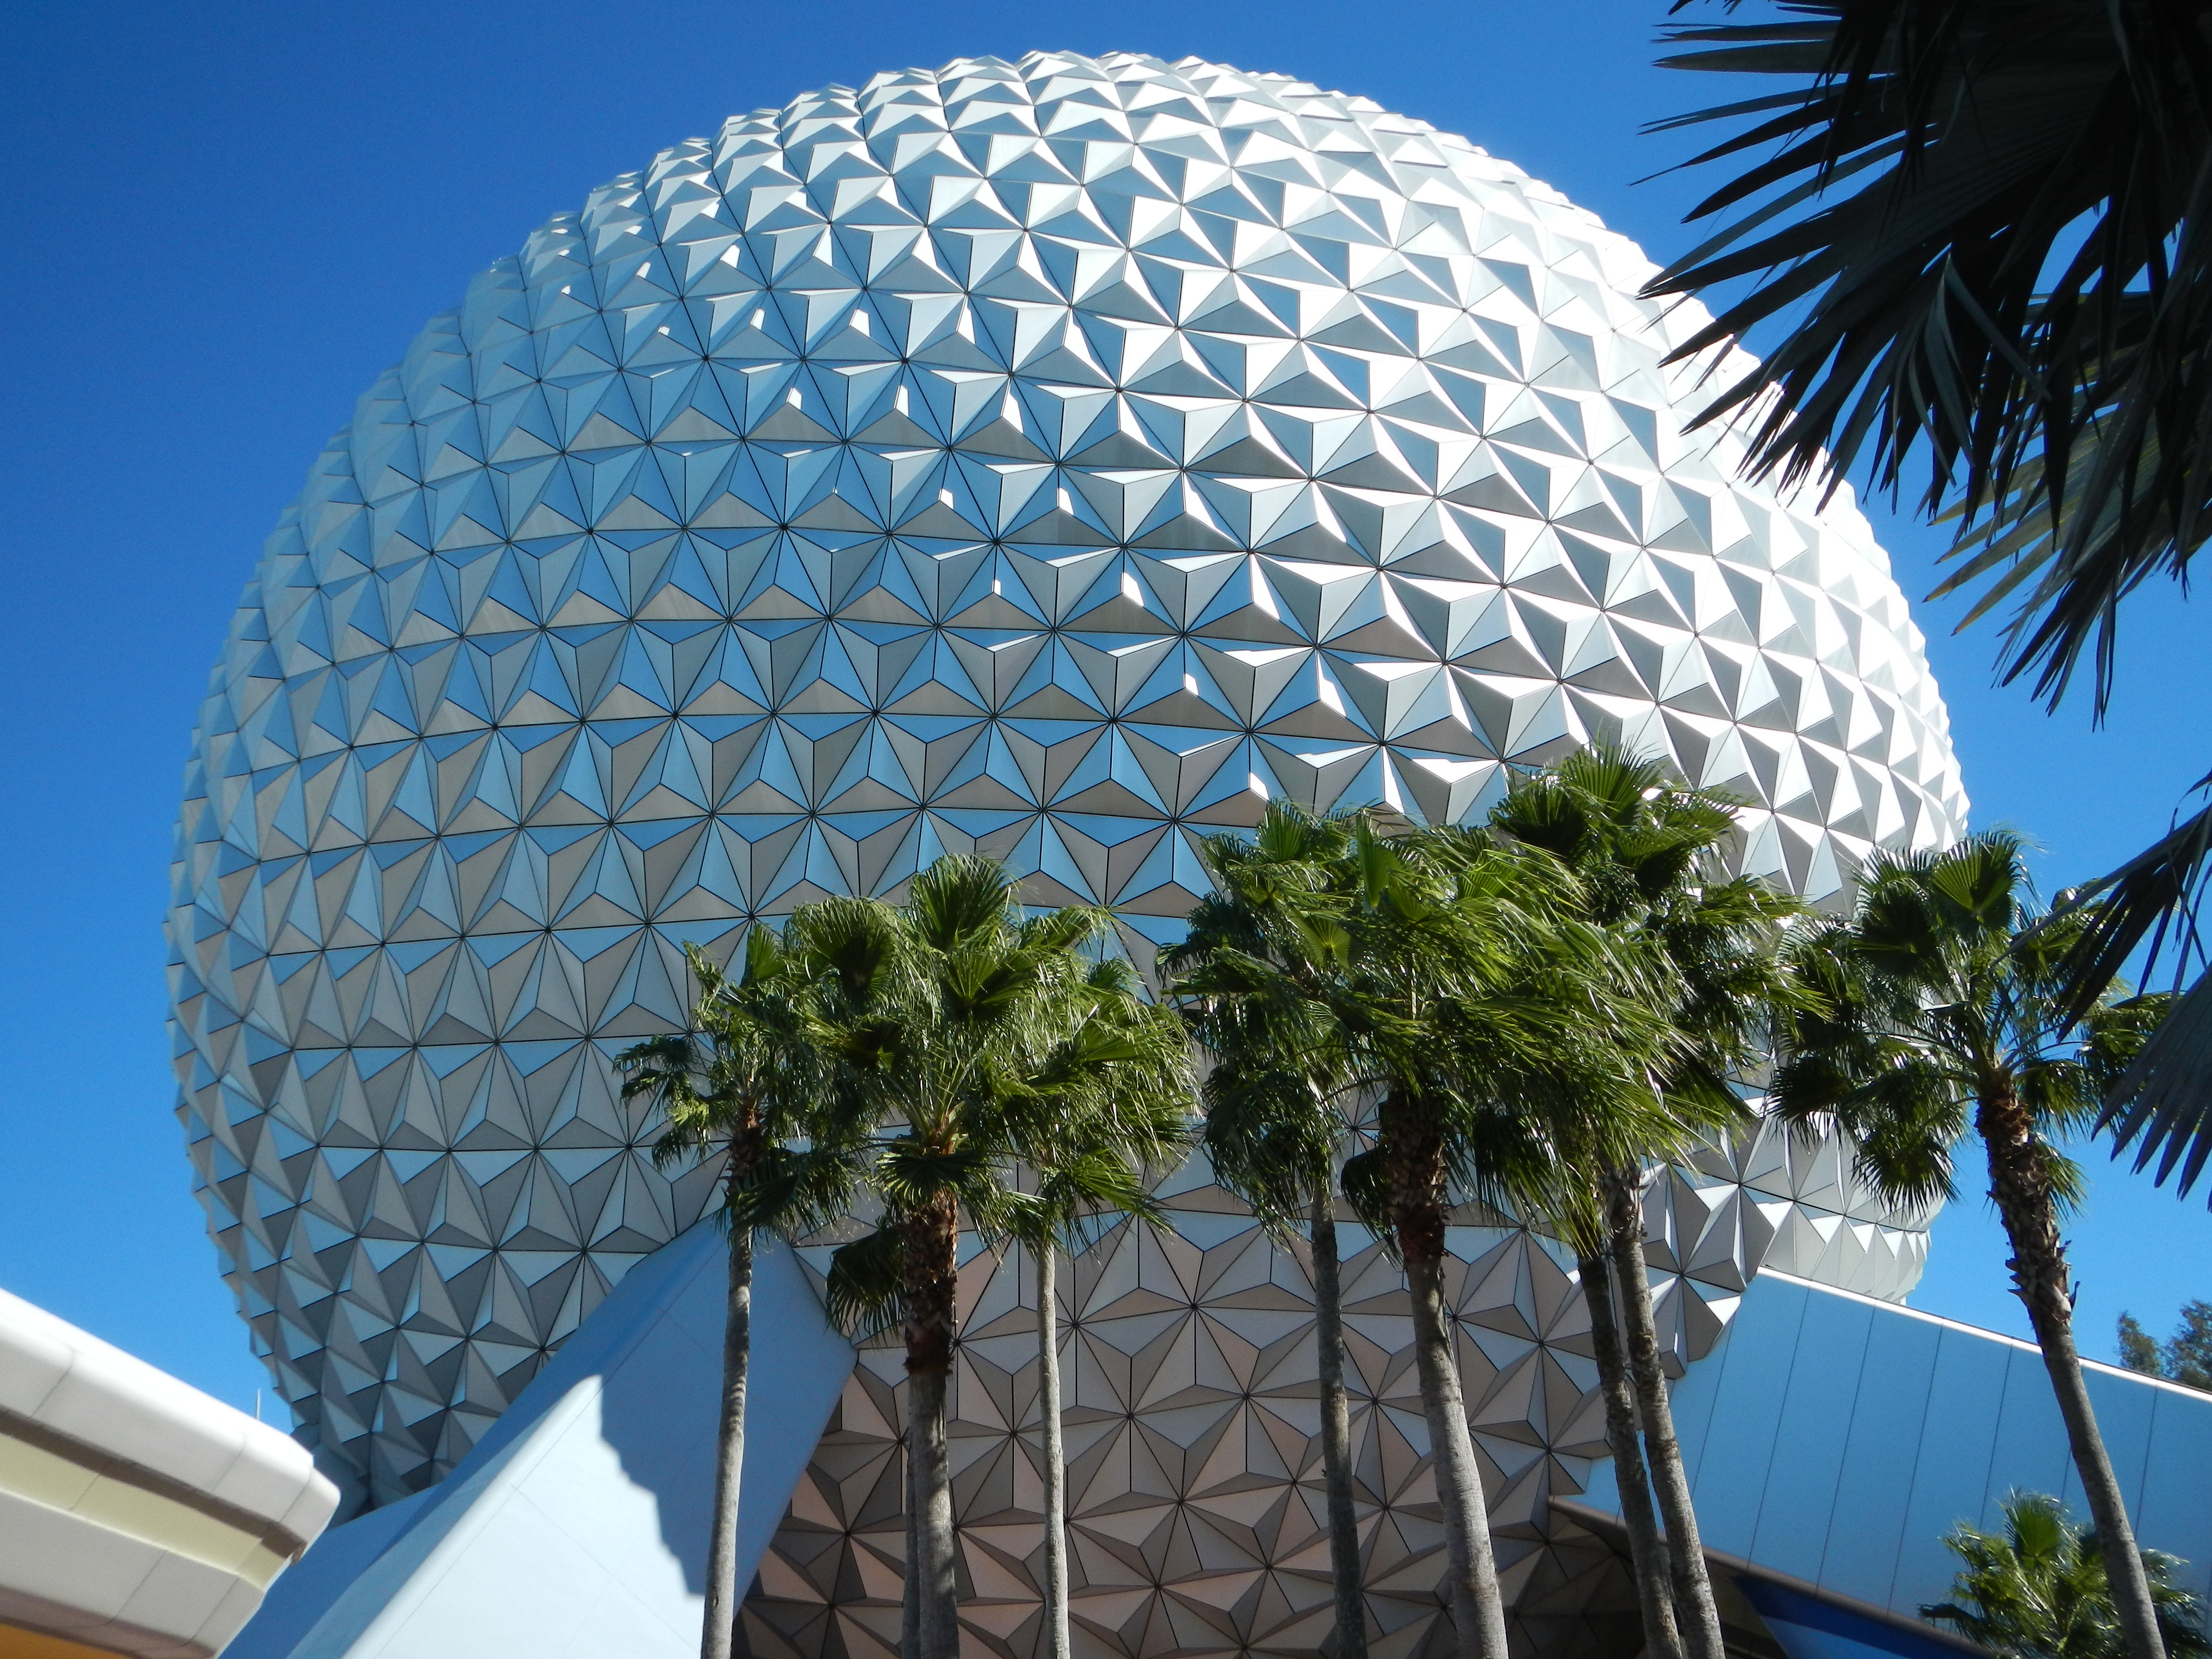 Epcot - Back of Spaceship Earth